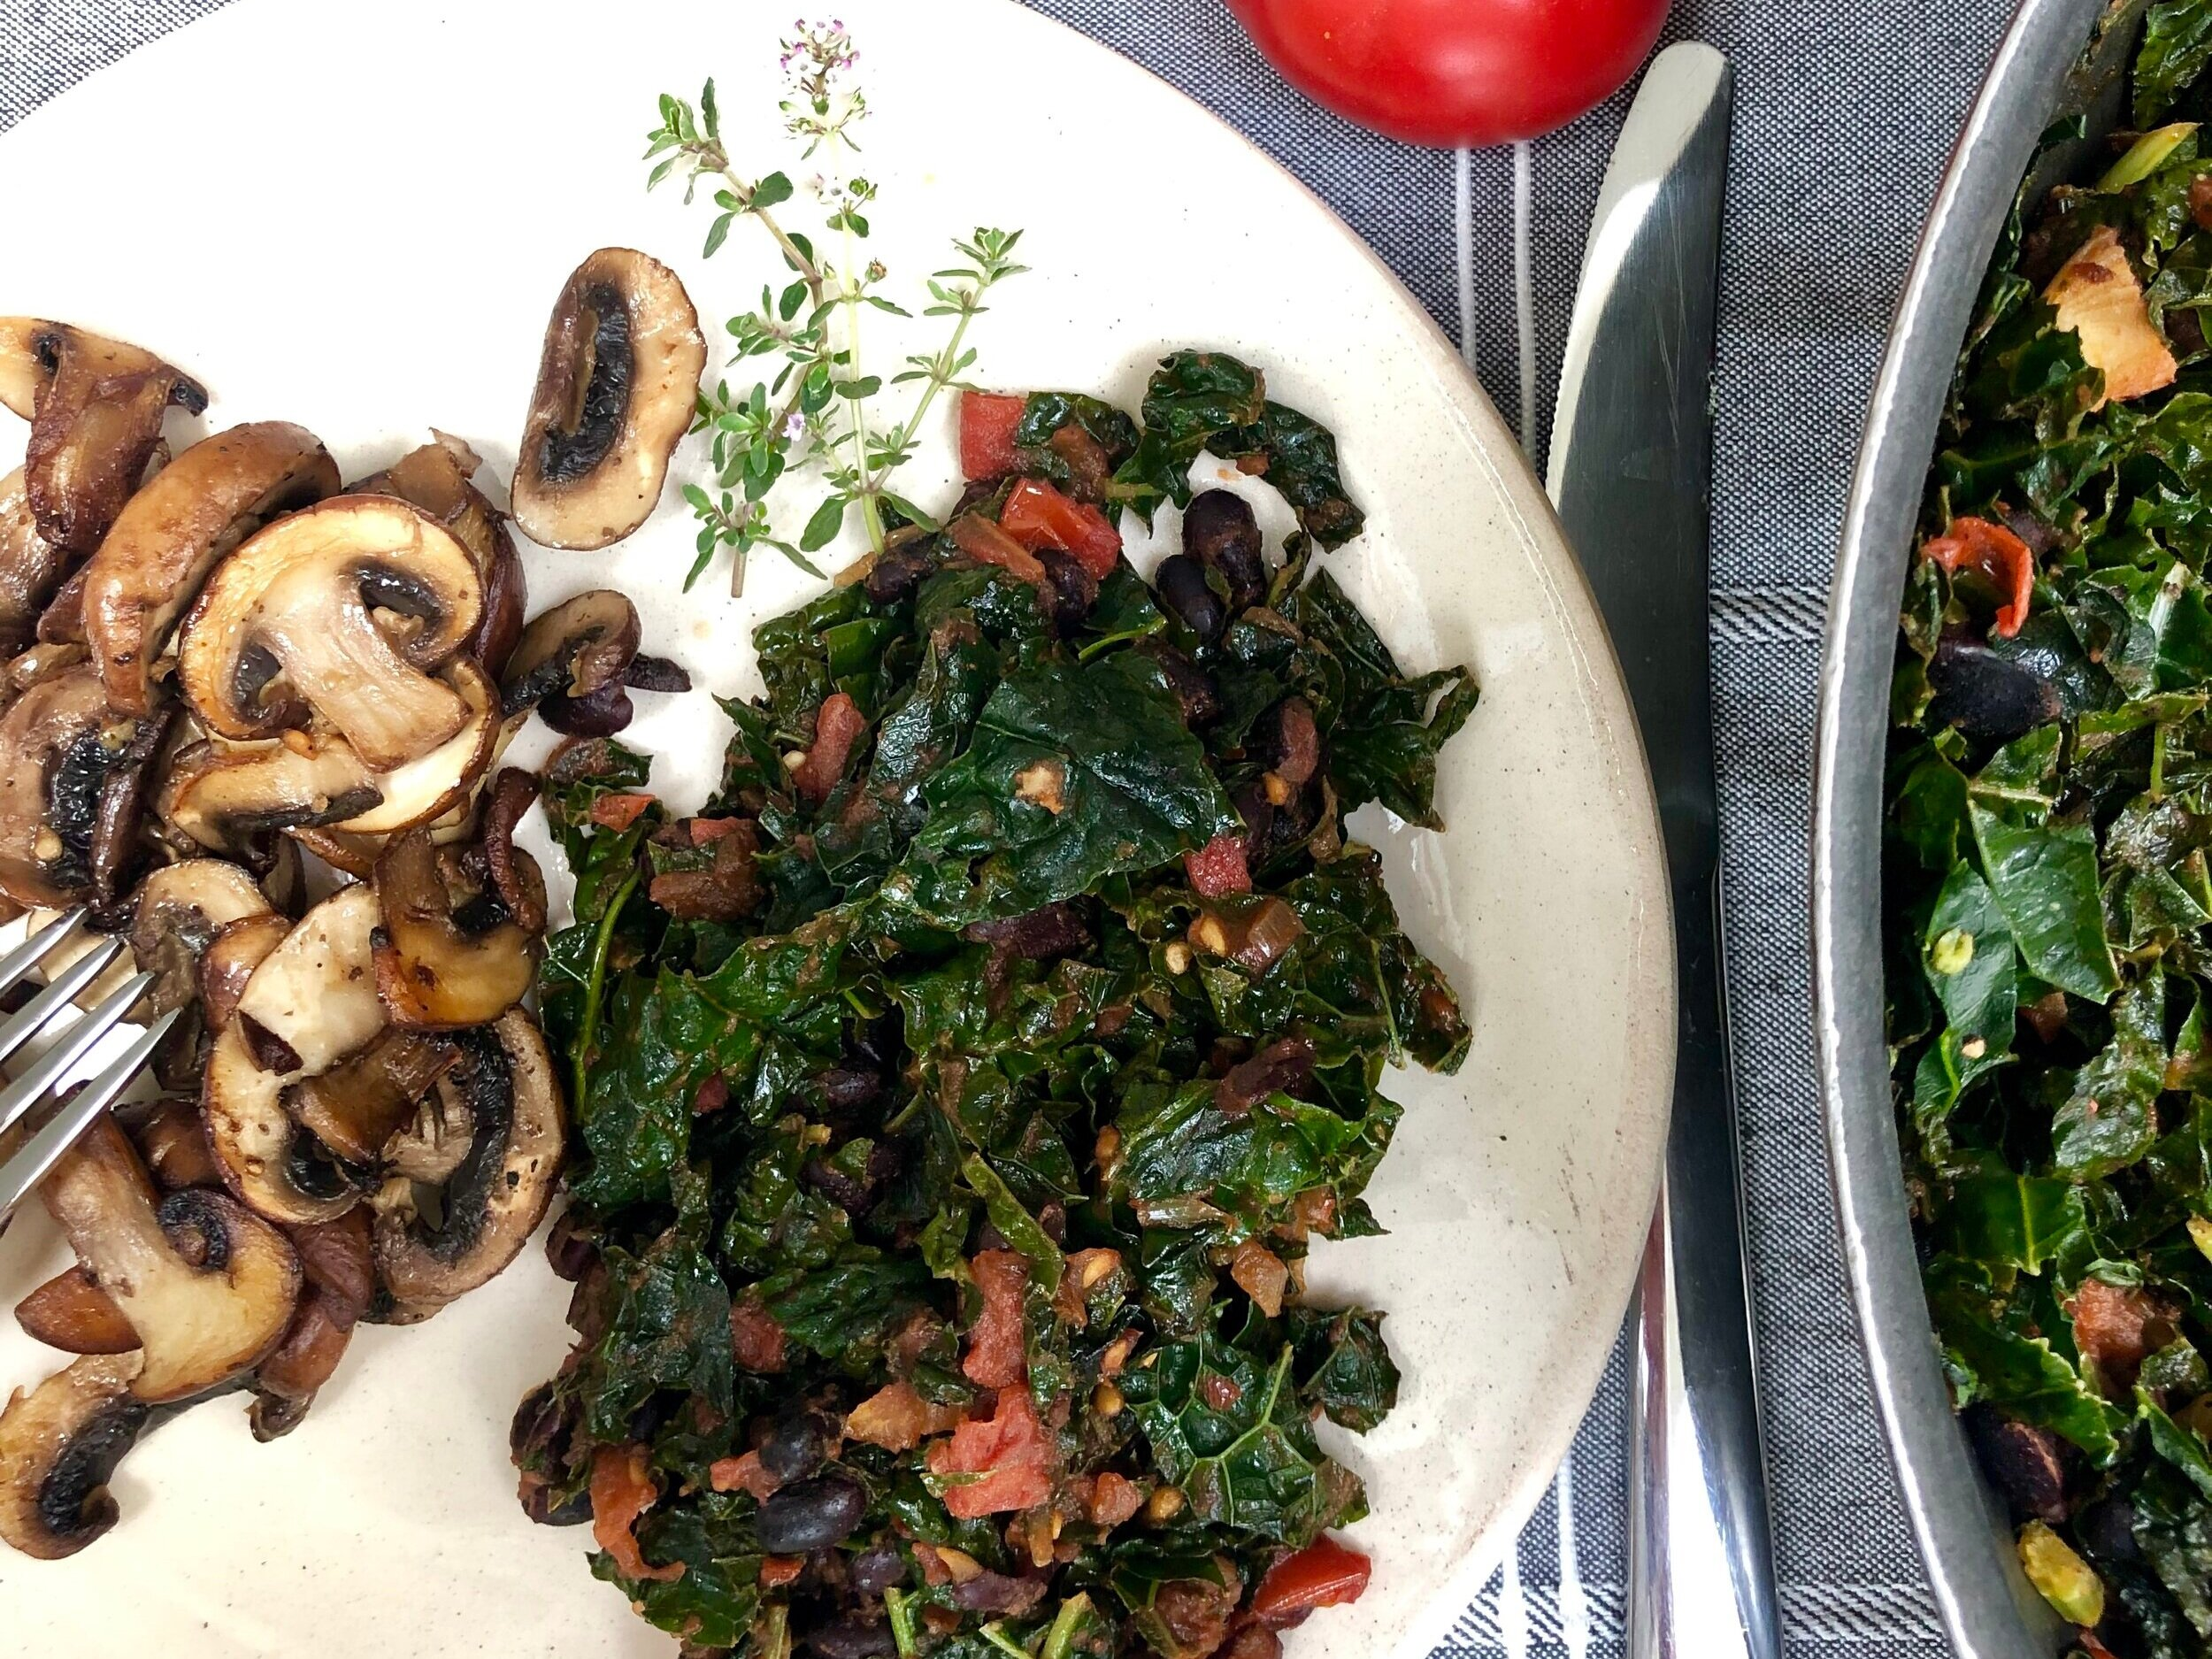 Spicy Greens and Beans with Mushrooms